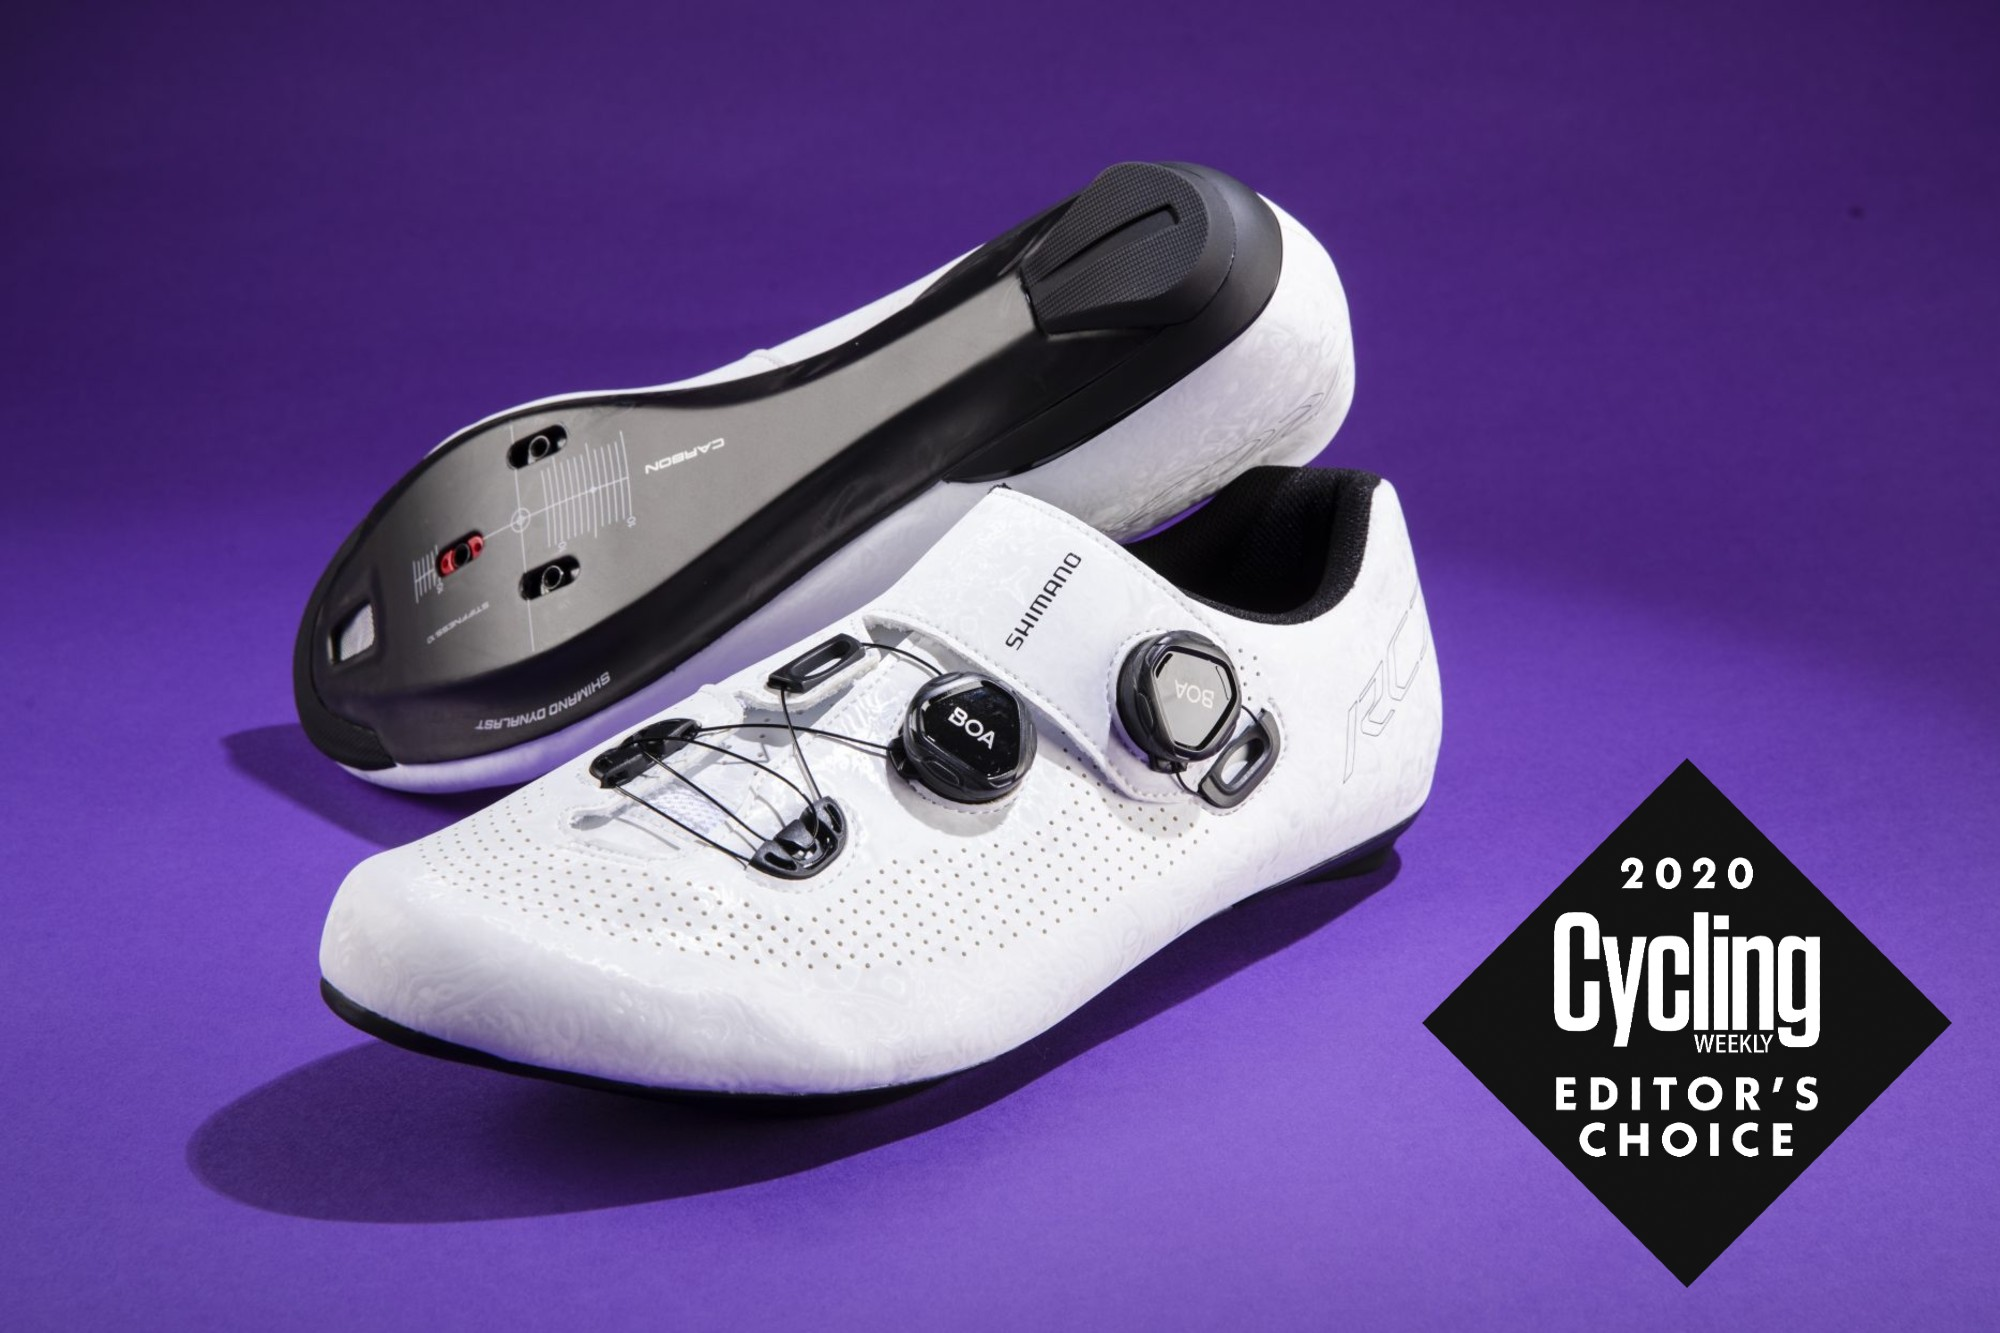 Shimano RC7 cycling shoes review